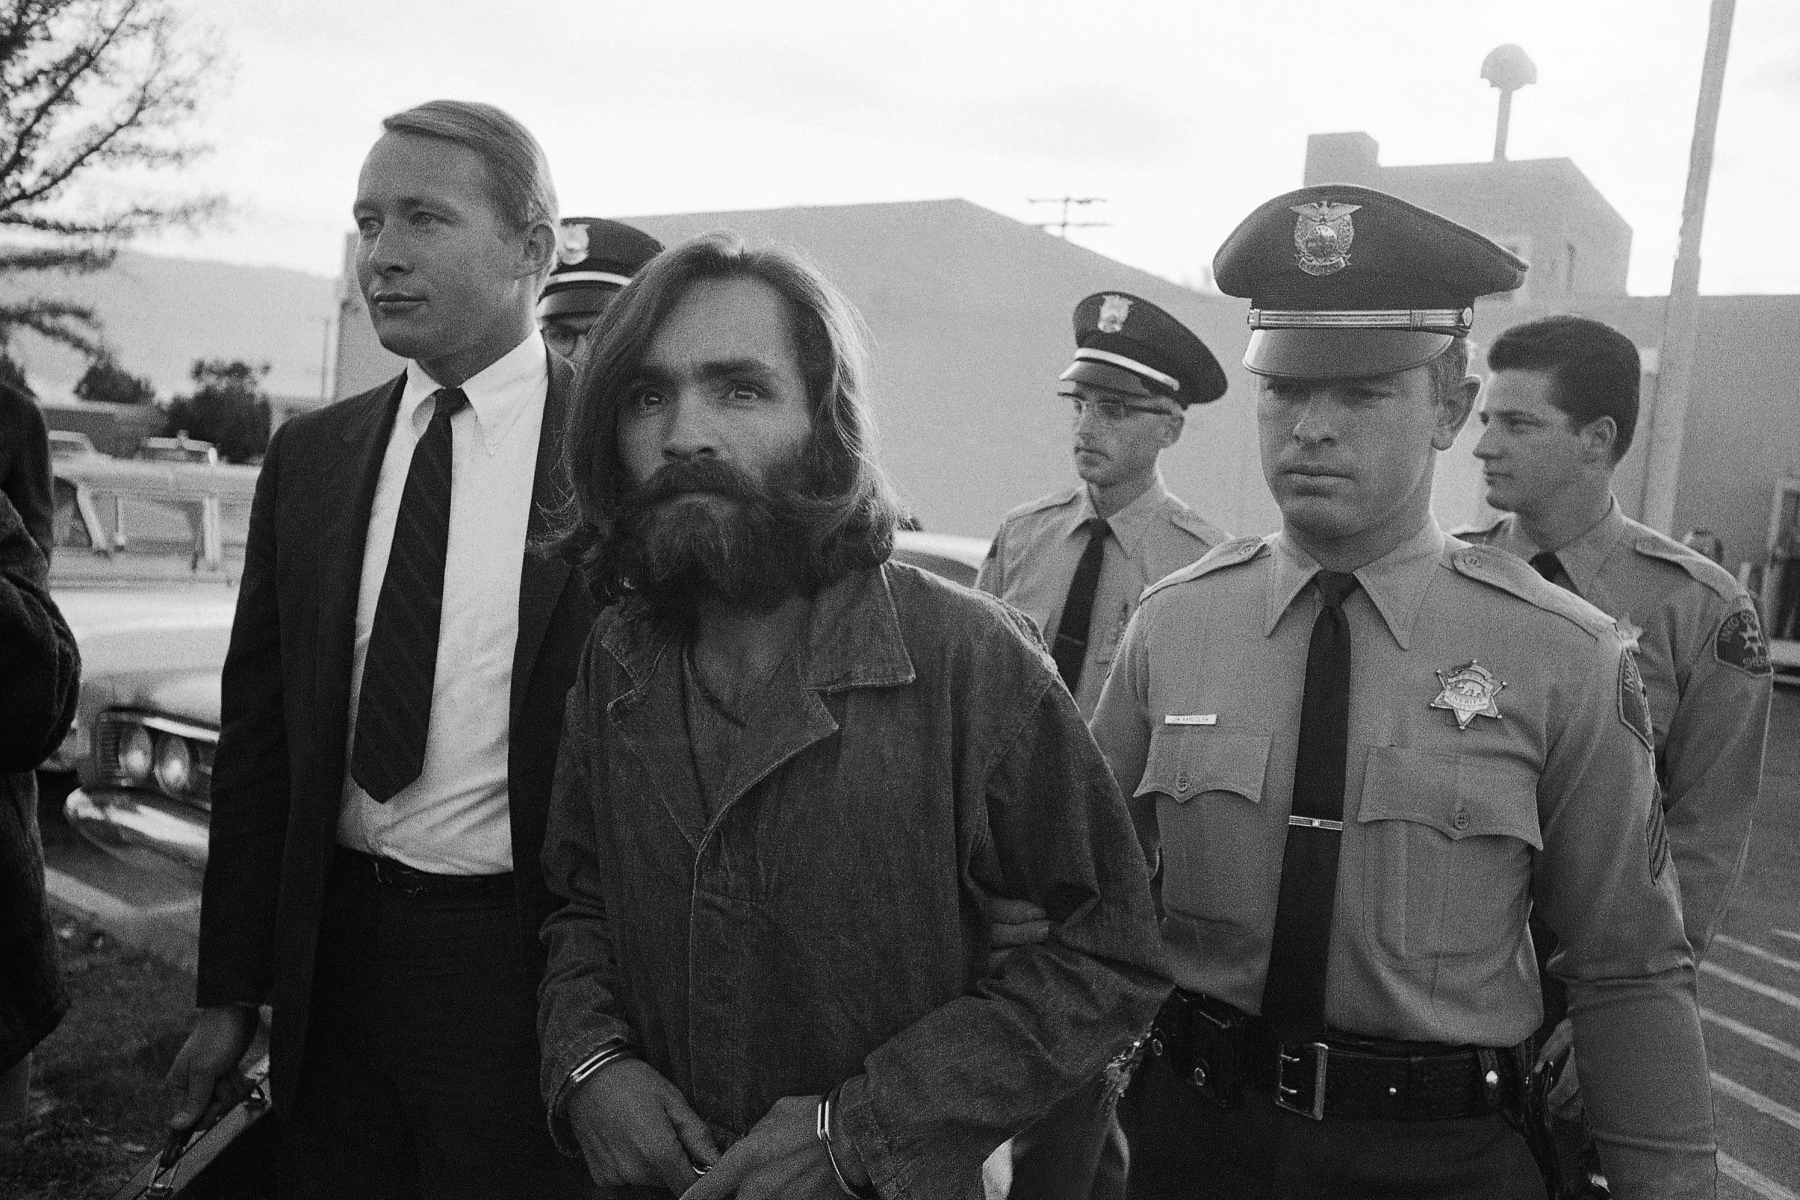 Charles Manson 1970 Rs Interview About Manson Family Murders Rolling Stone